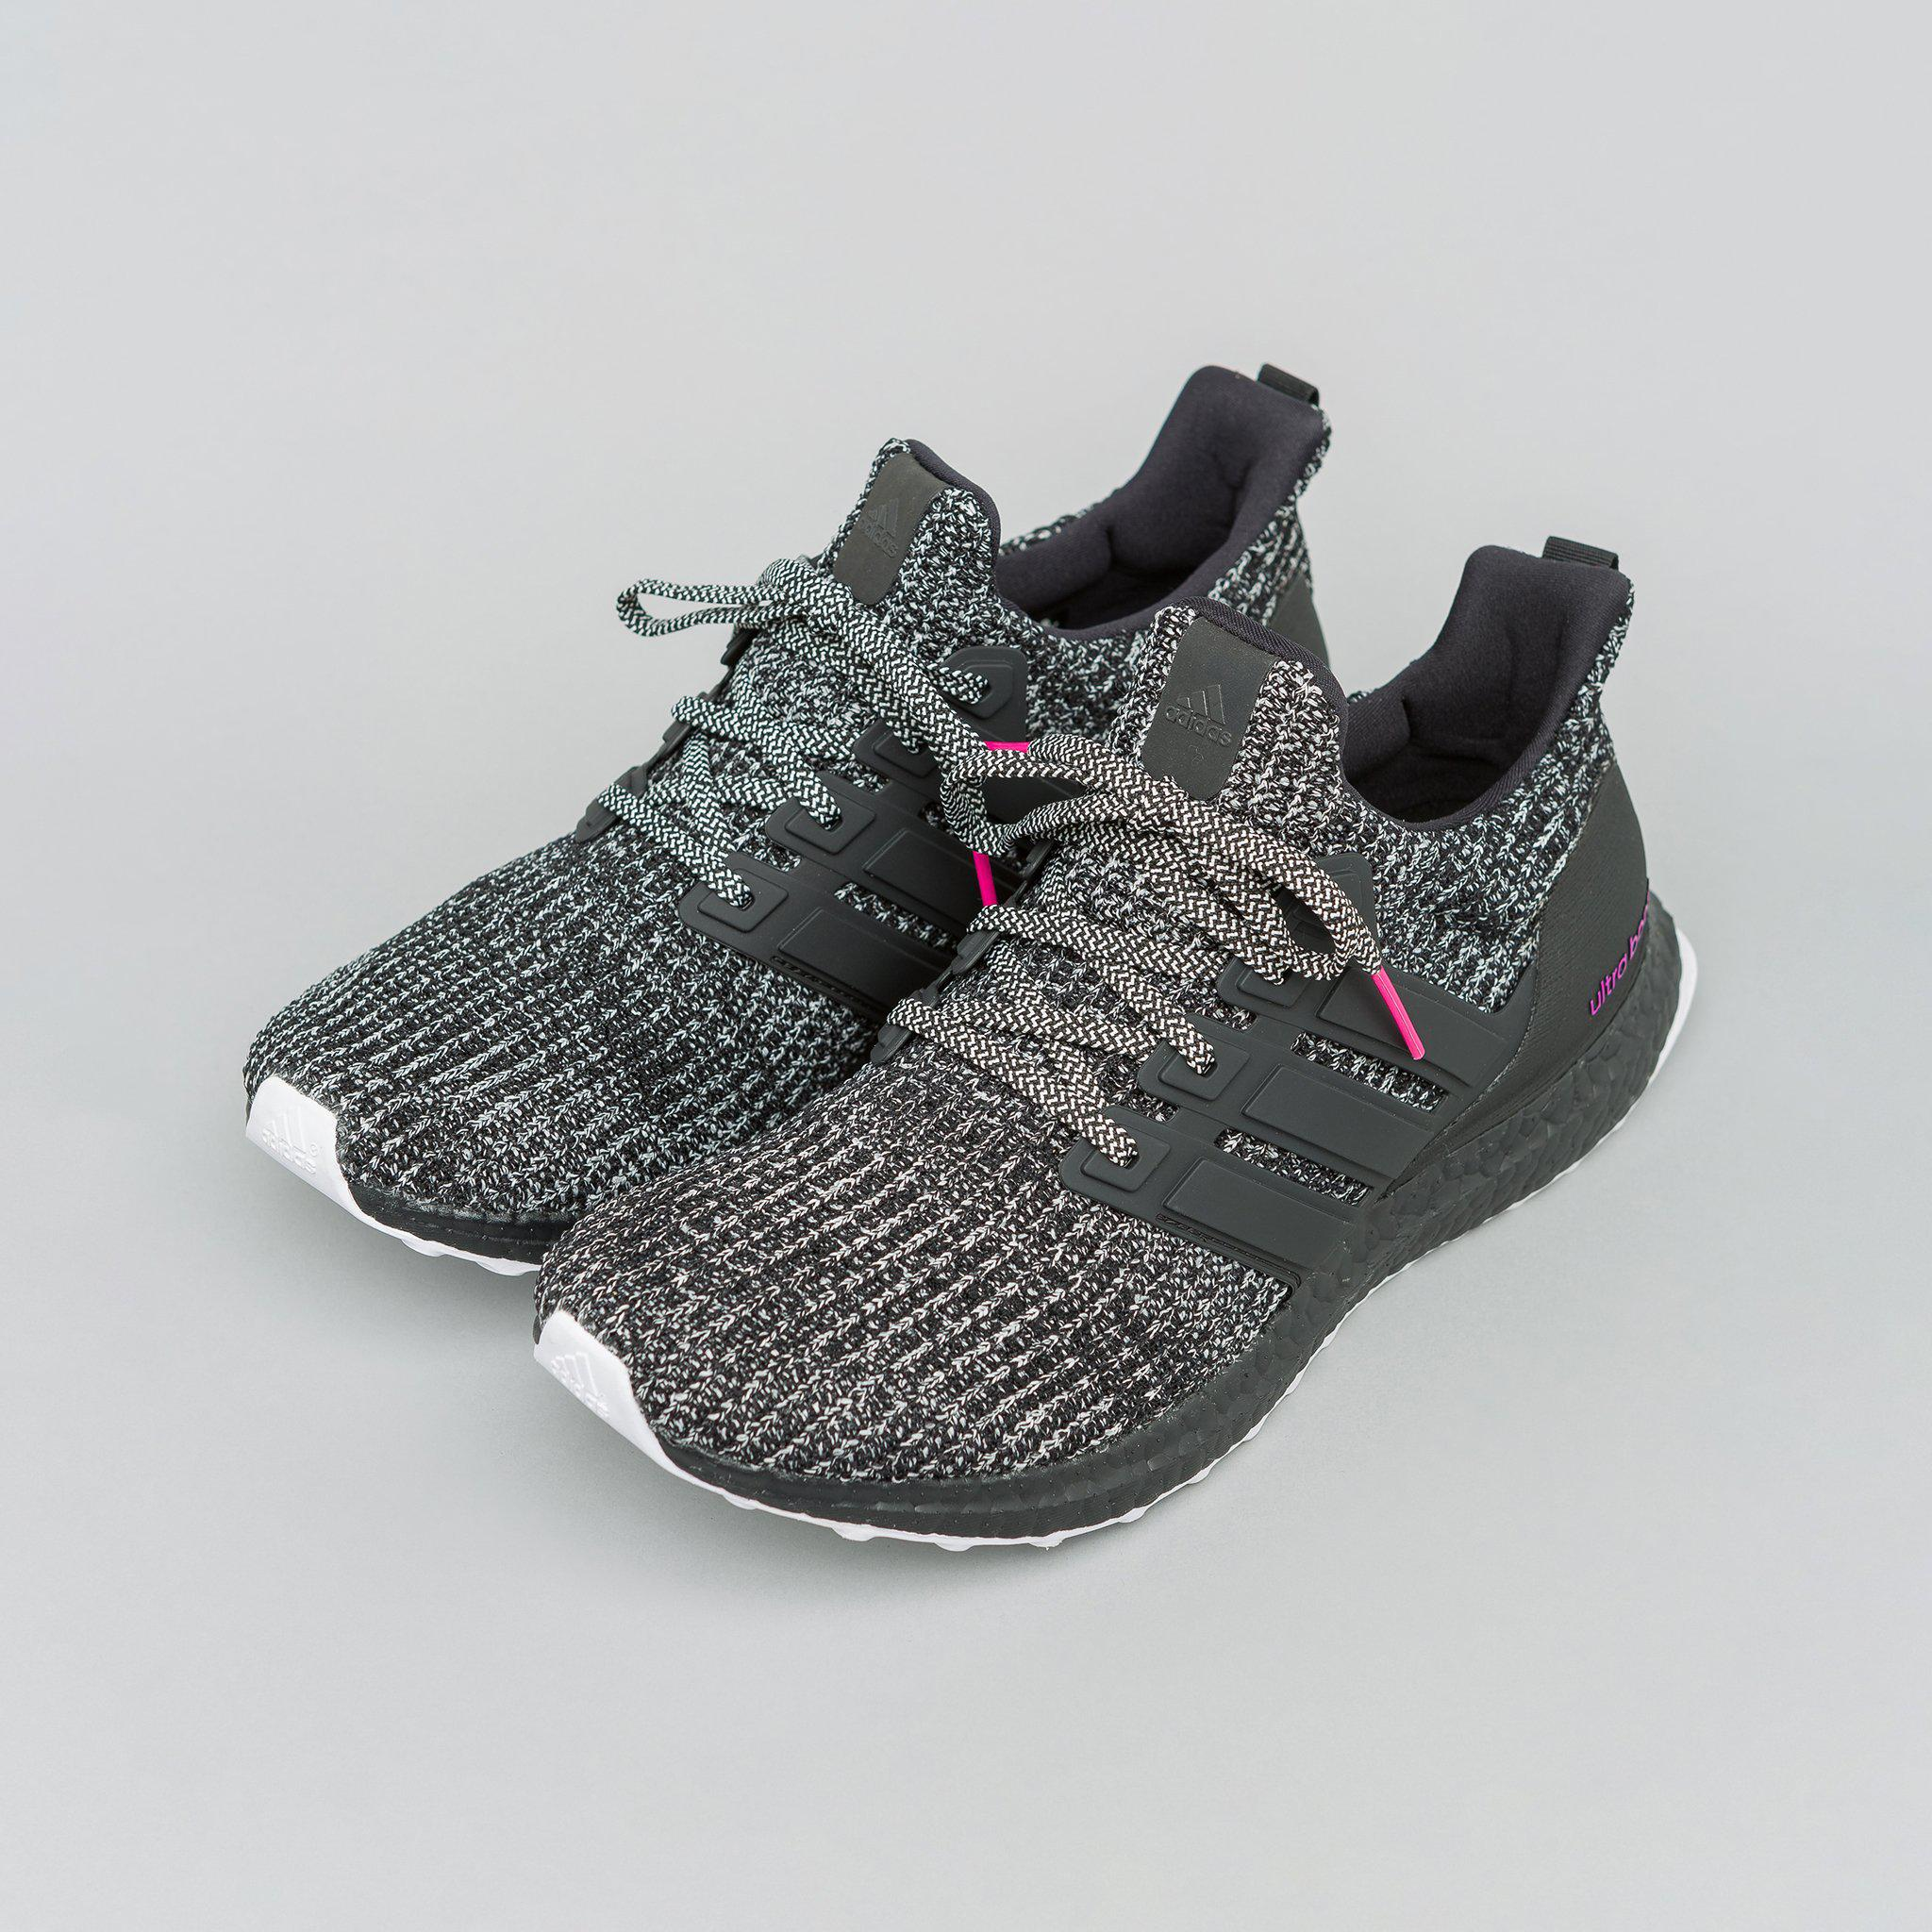 3b101e363f4d7 Lyst - adidas Ultra Boost 4.0 Breast Cancer Awareness in Black for Men